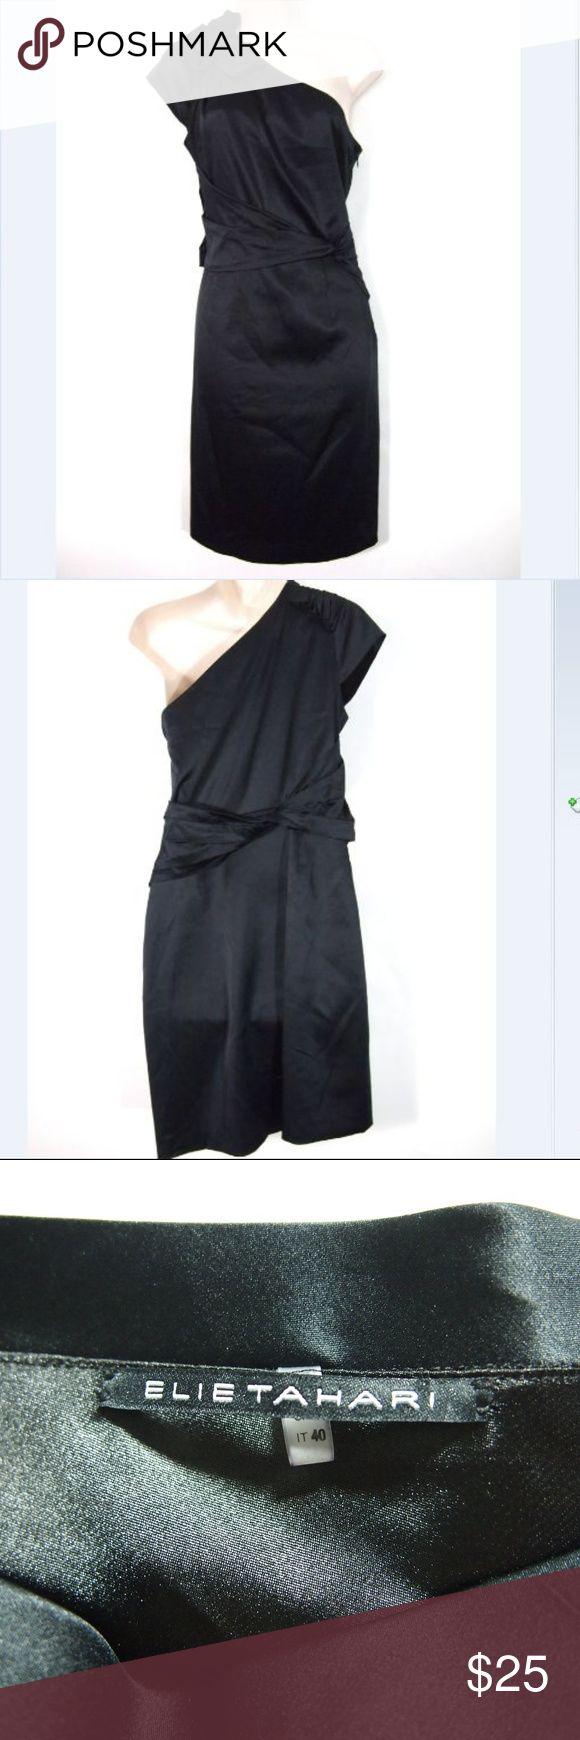 Elie Tahari Keaton 1 Shoulder Ruffle Sheath Dress Women's Elie Tahari dress  95% silk, 5% elastane  Tags indicate a women's size 4.  Condition rating is 8/10 EXCELLENT condition. Light signs of wear, no stand-out issues. Elie Tahari Dresses One Shoulder